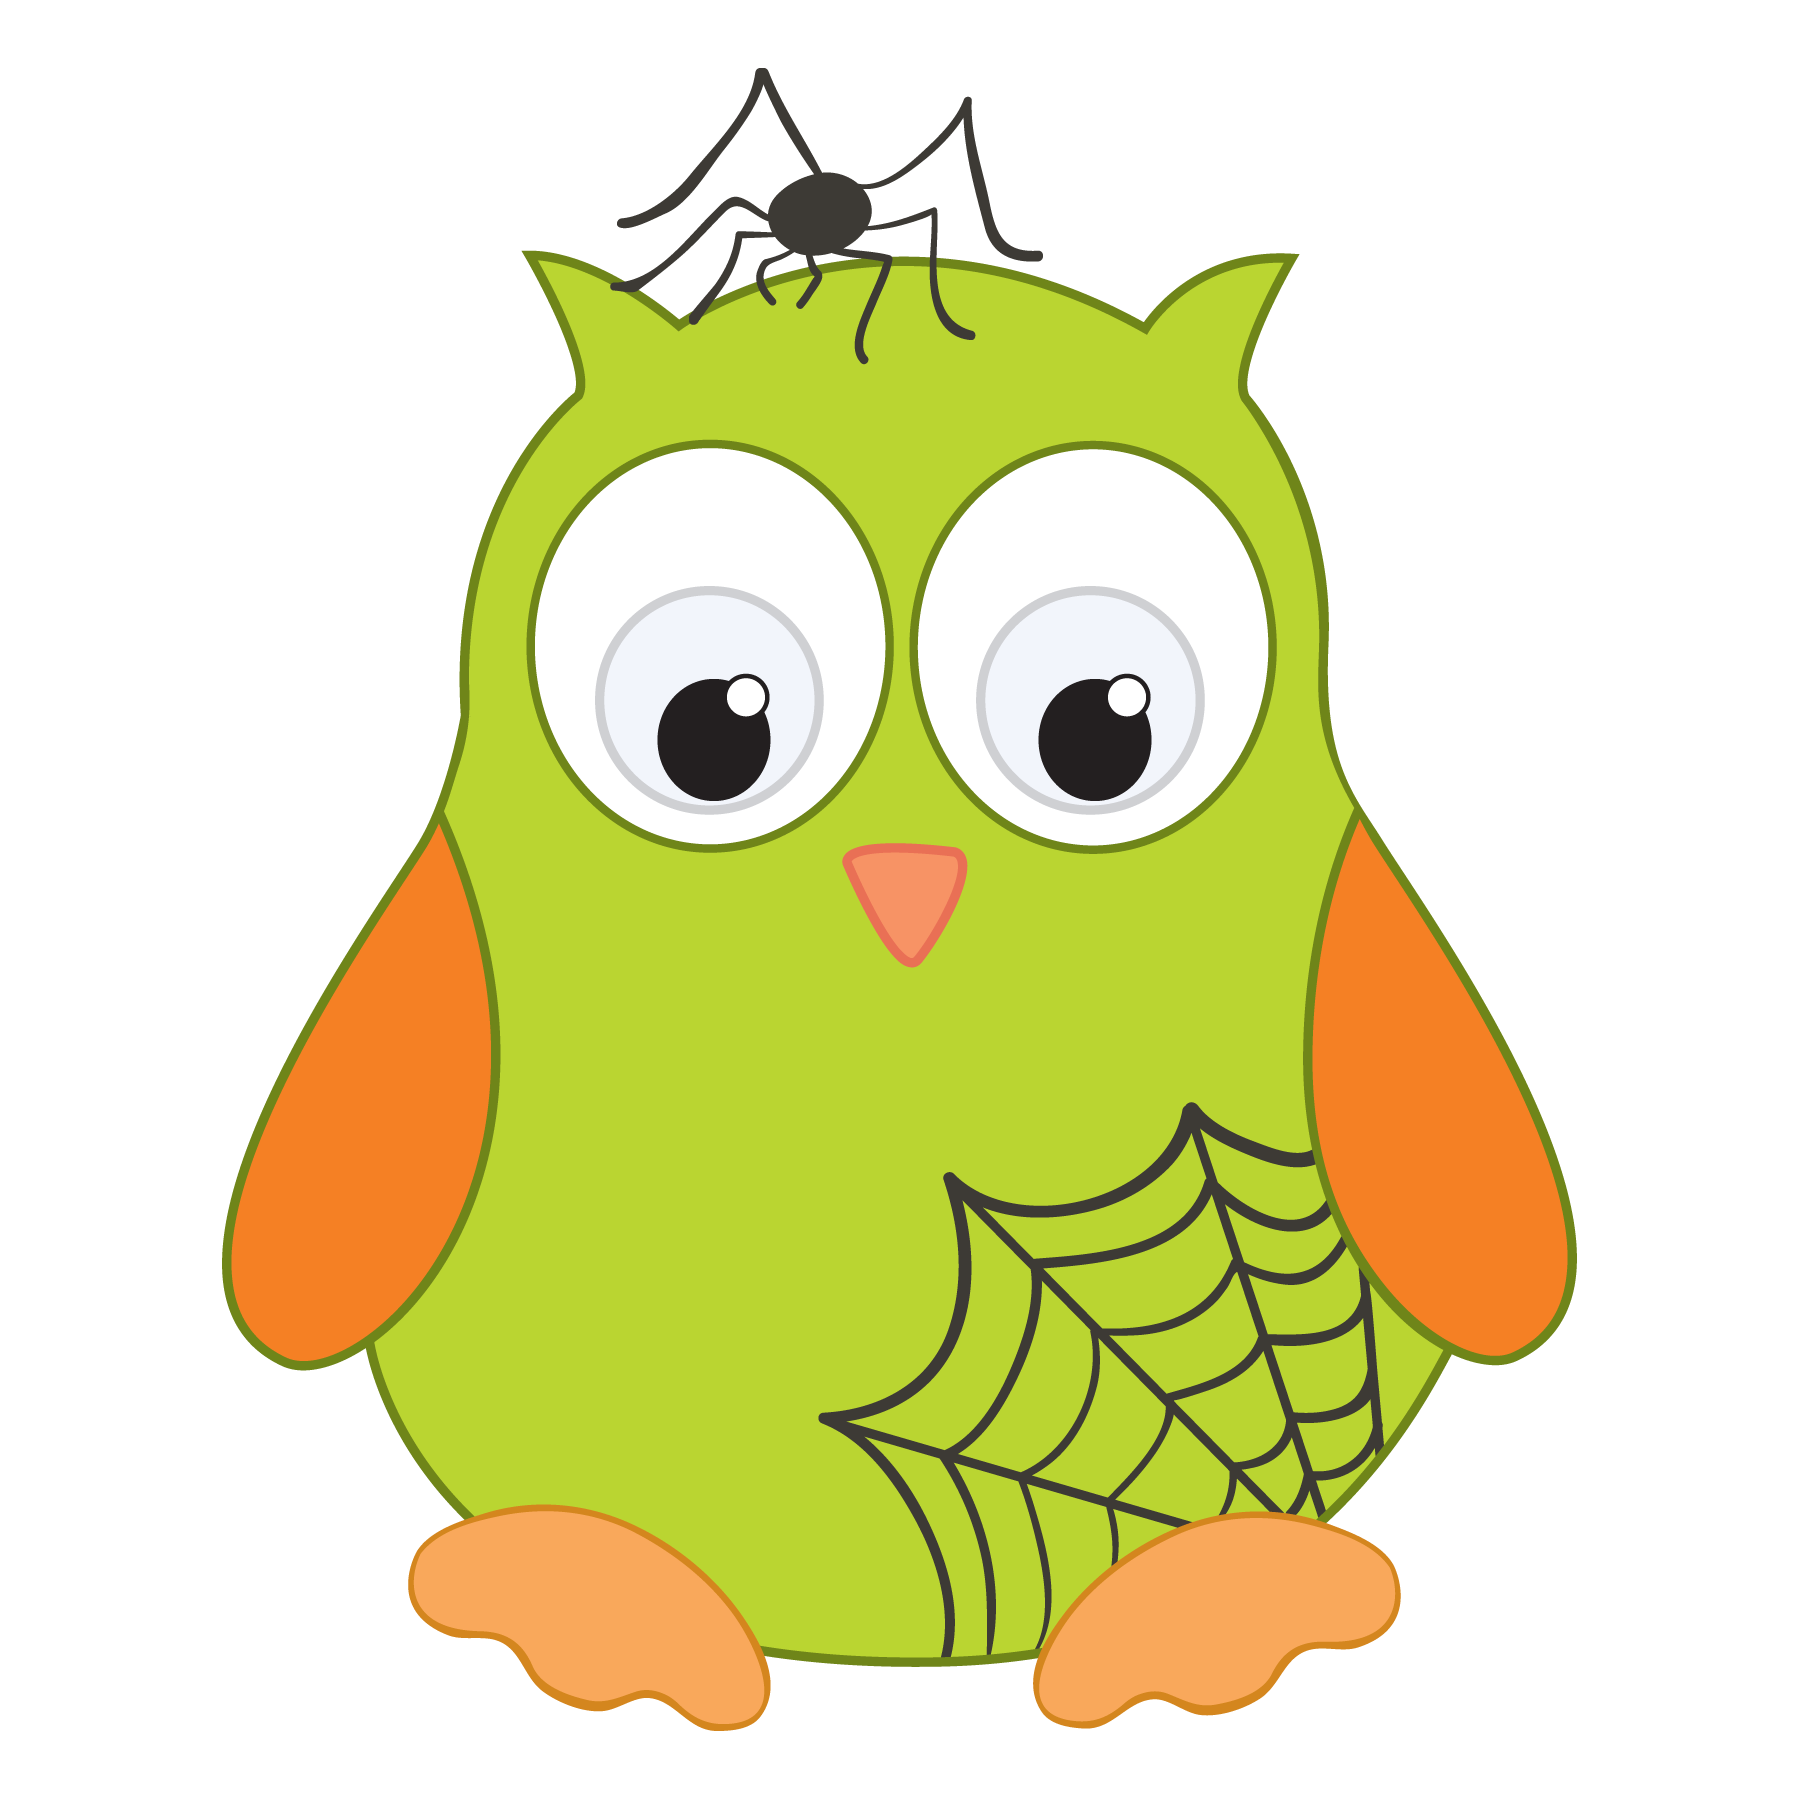 Halloween clipart bird. Photo by daniellemoraesfalcao minus